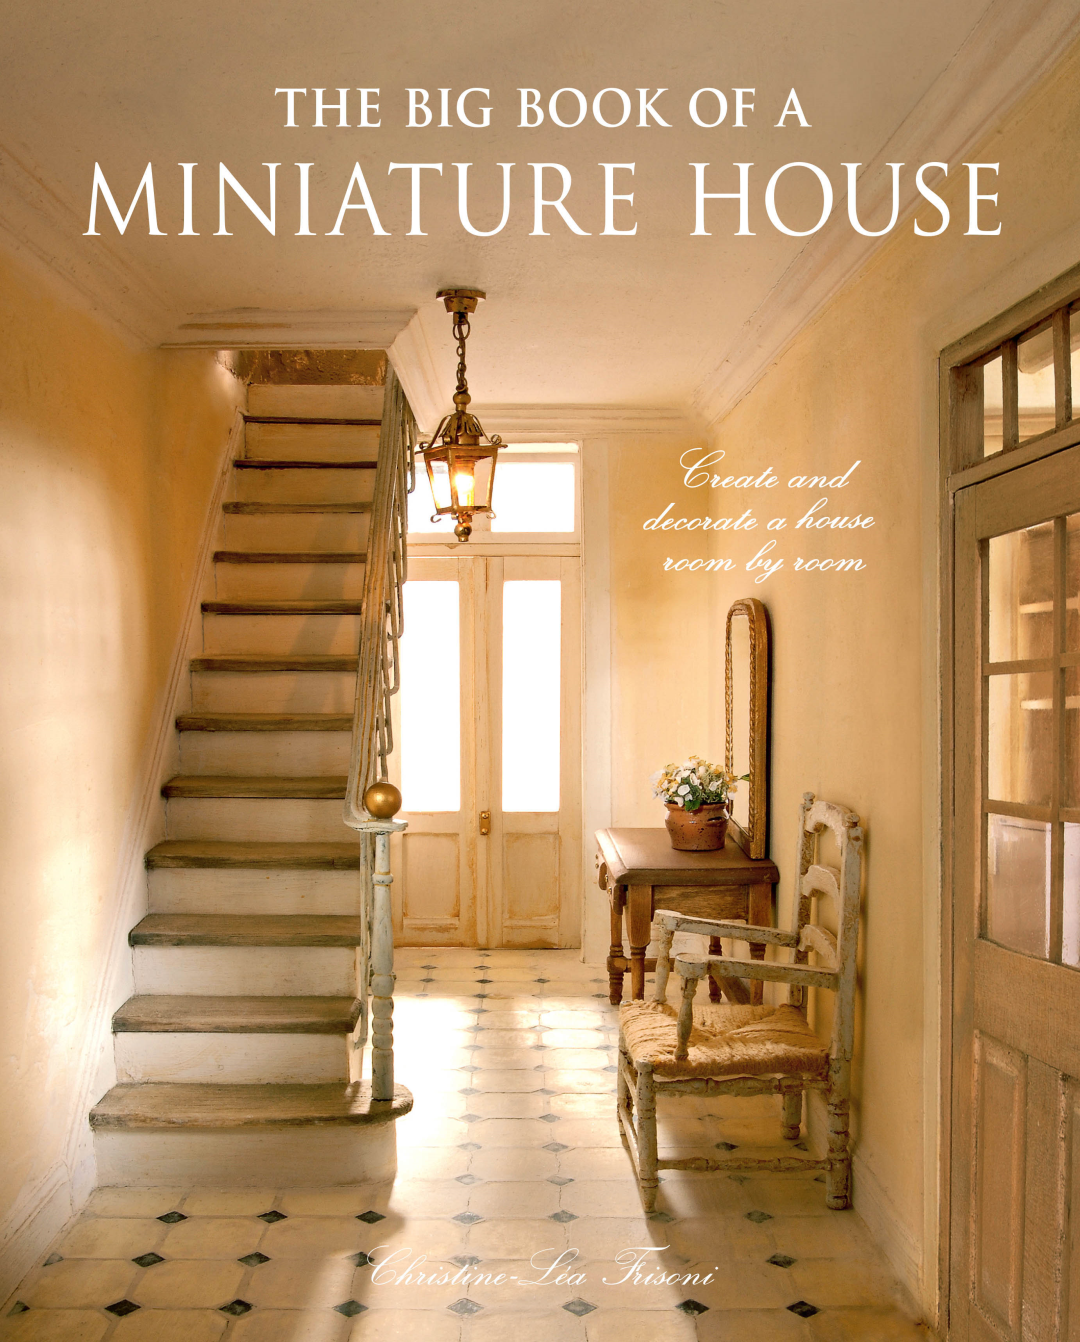 The Big Book of a Miniature House book cover